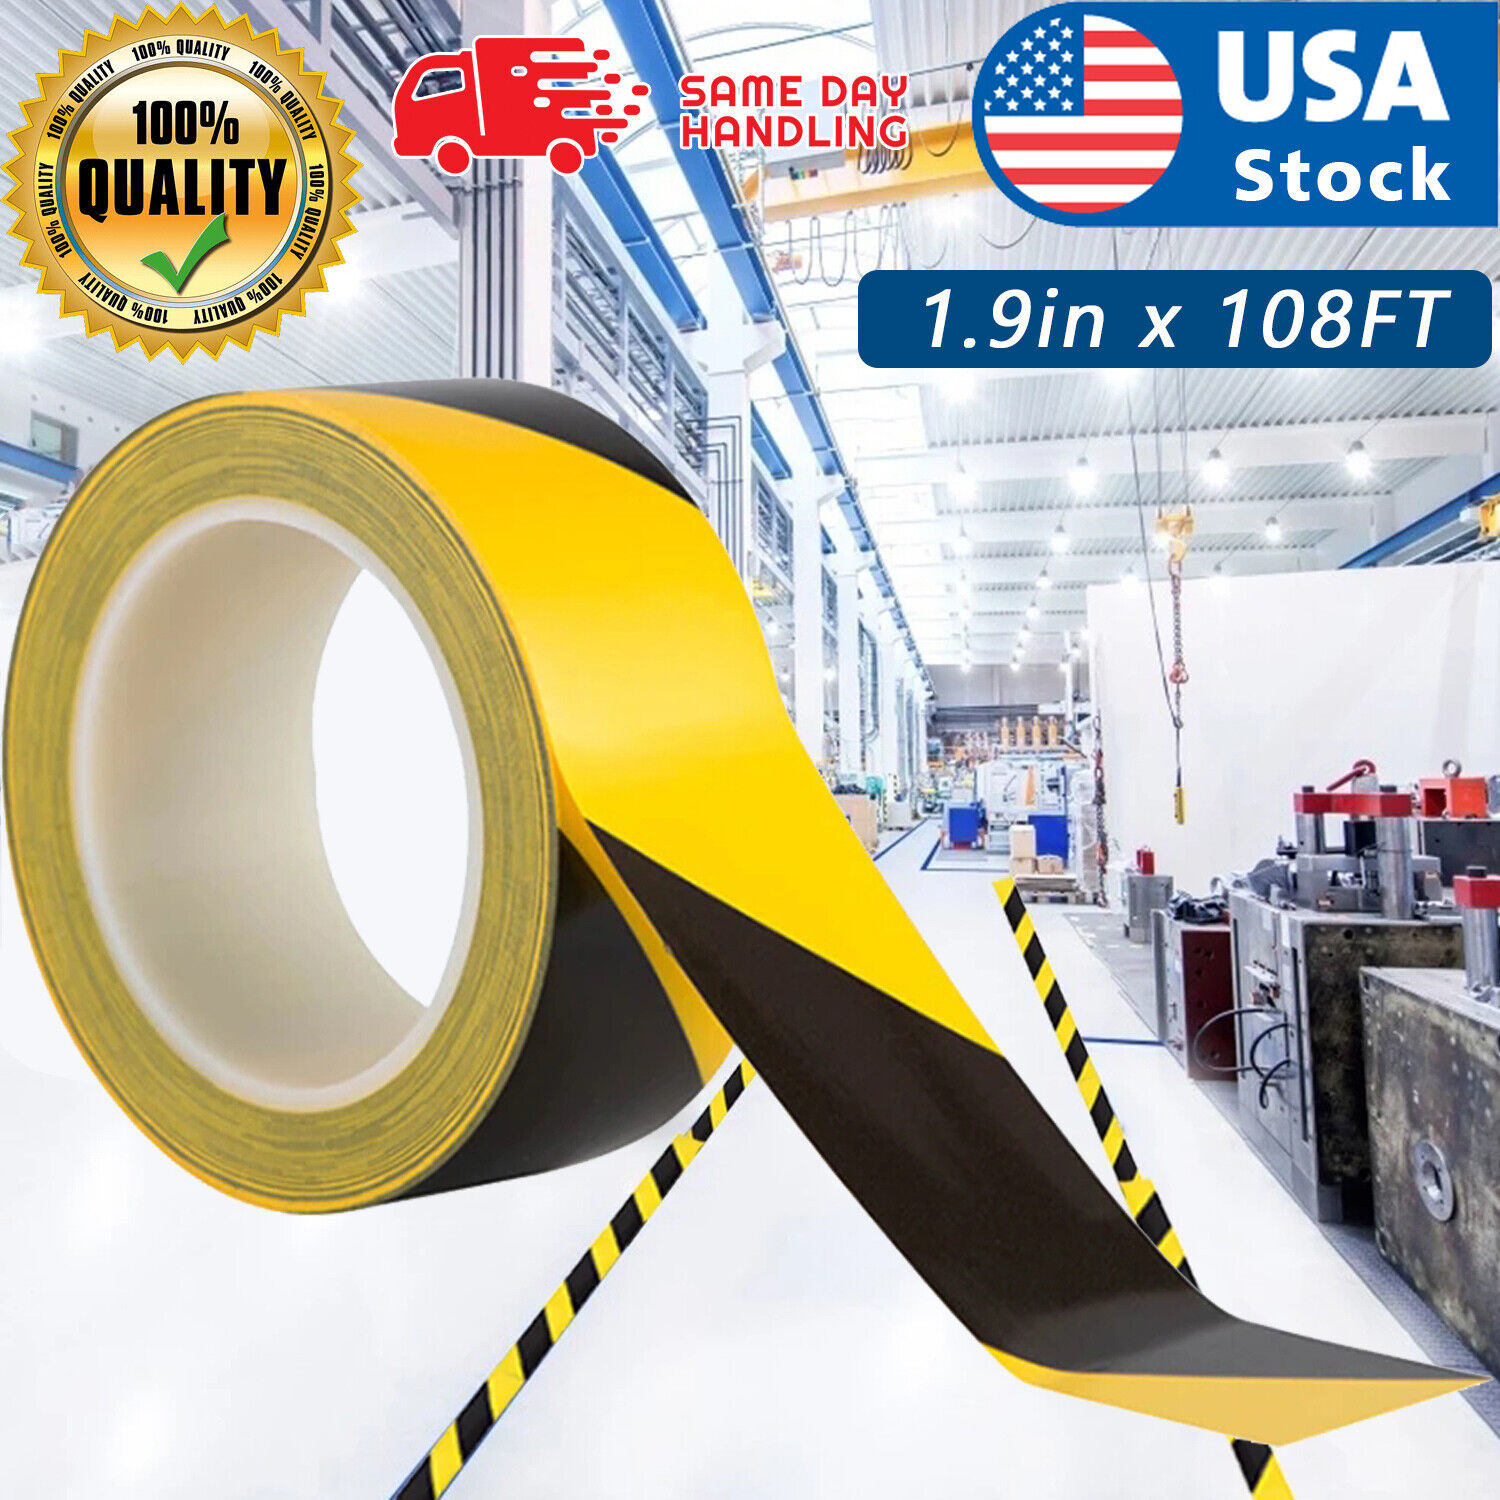 1.9in x 108FT Black Yellow Safety Warning Caution Conspicuity Tape Strip Sticker Business & Industrial